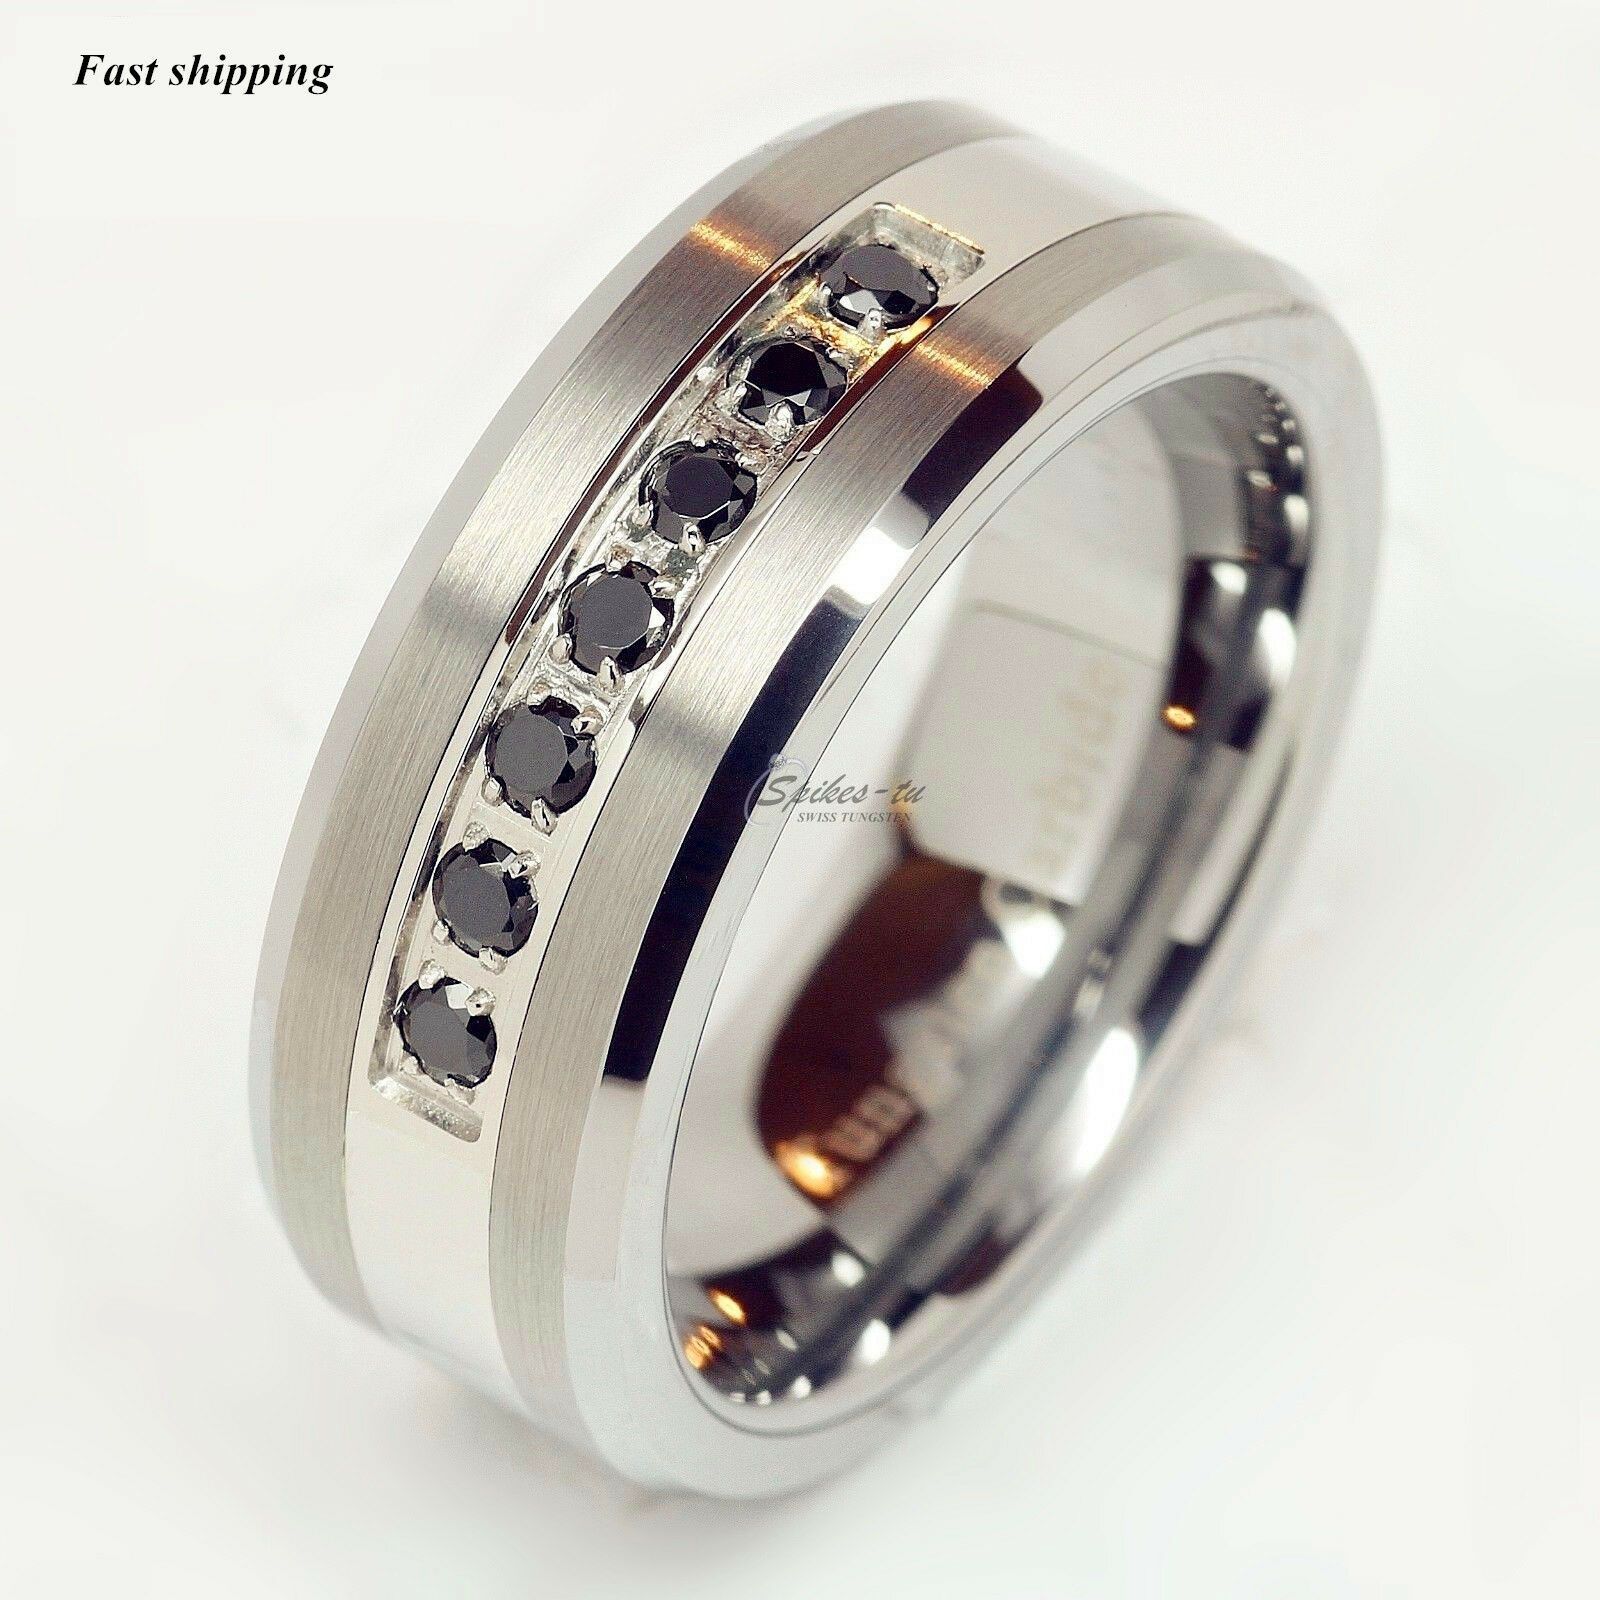 rings hers detailed and his engagement wedding diamond gold silver white